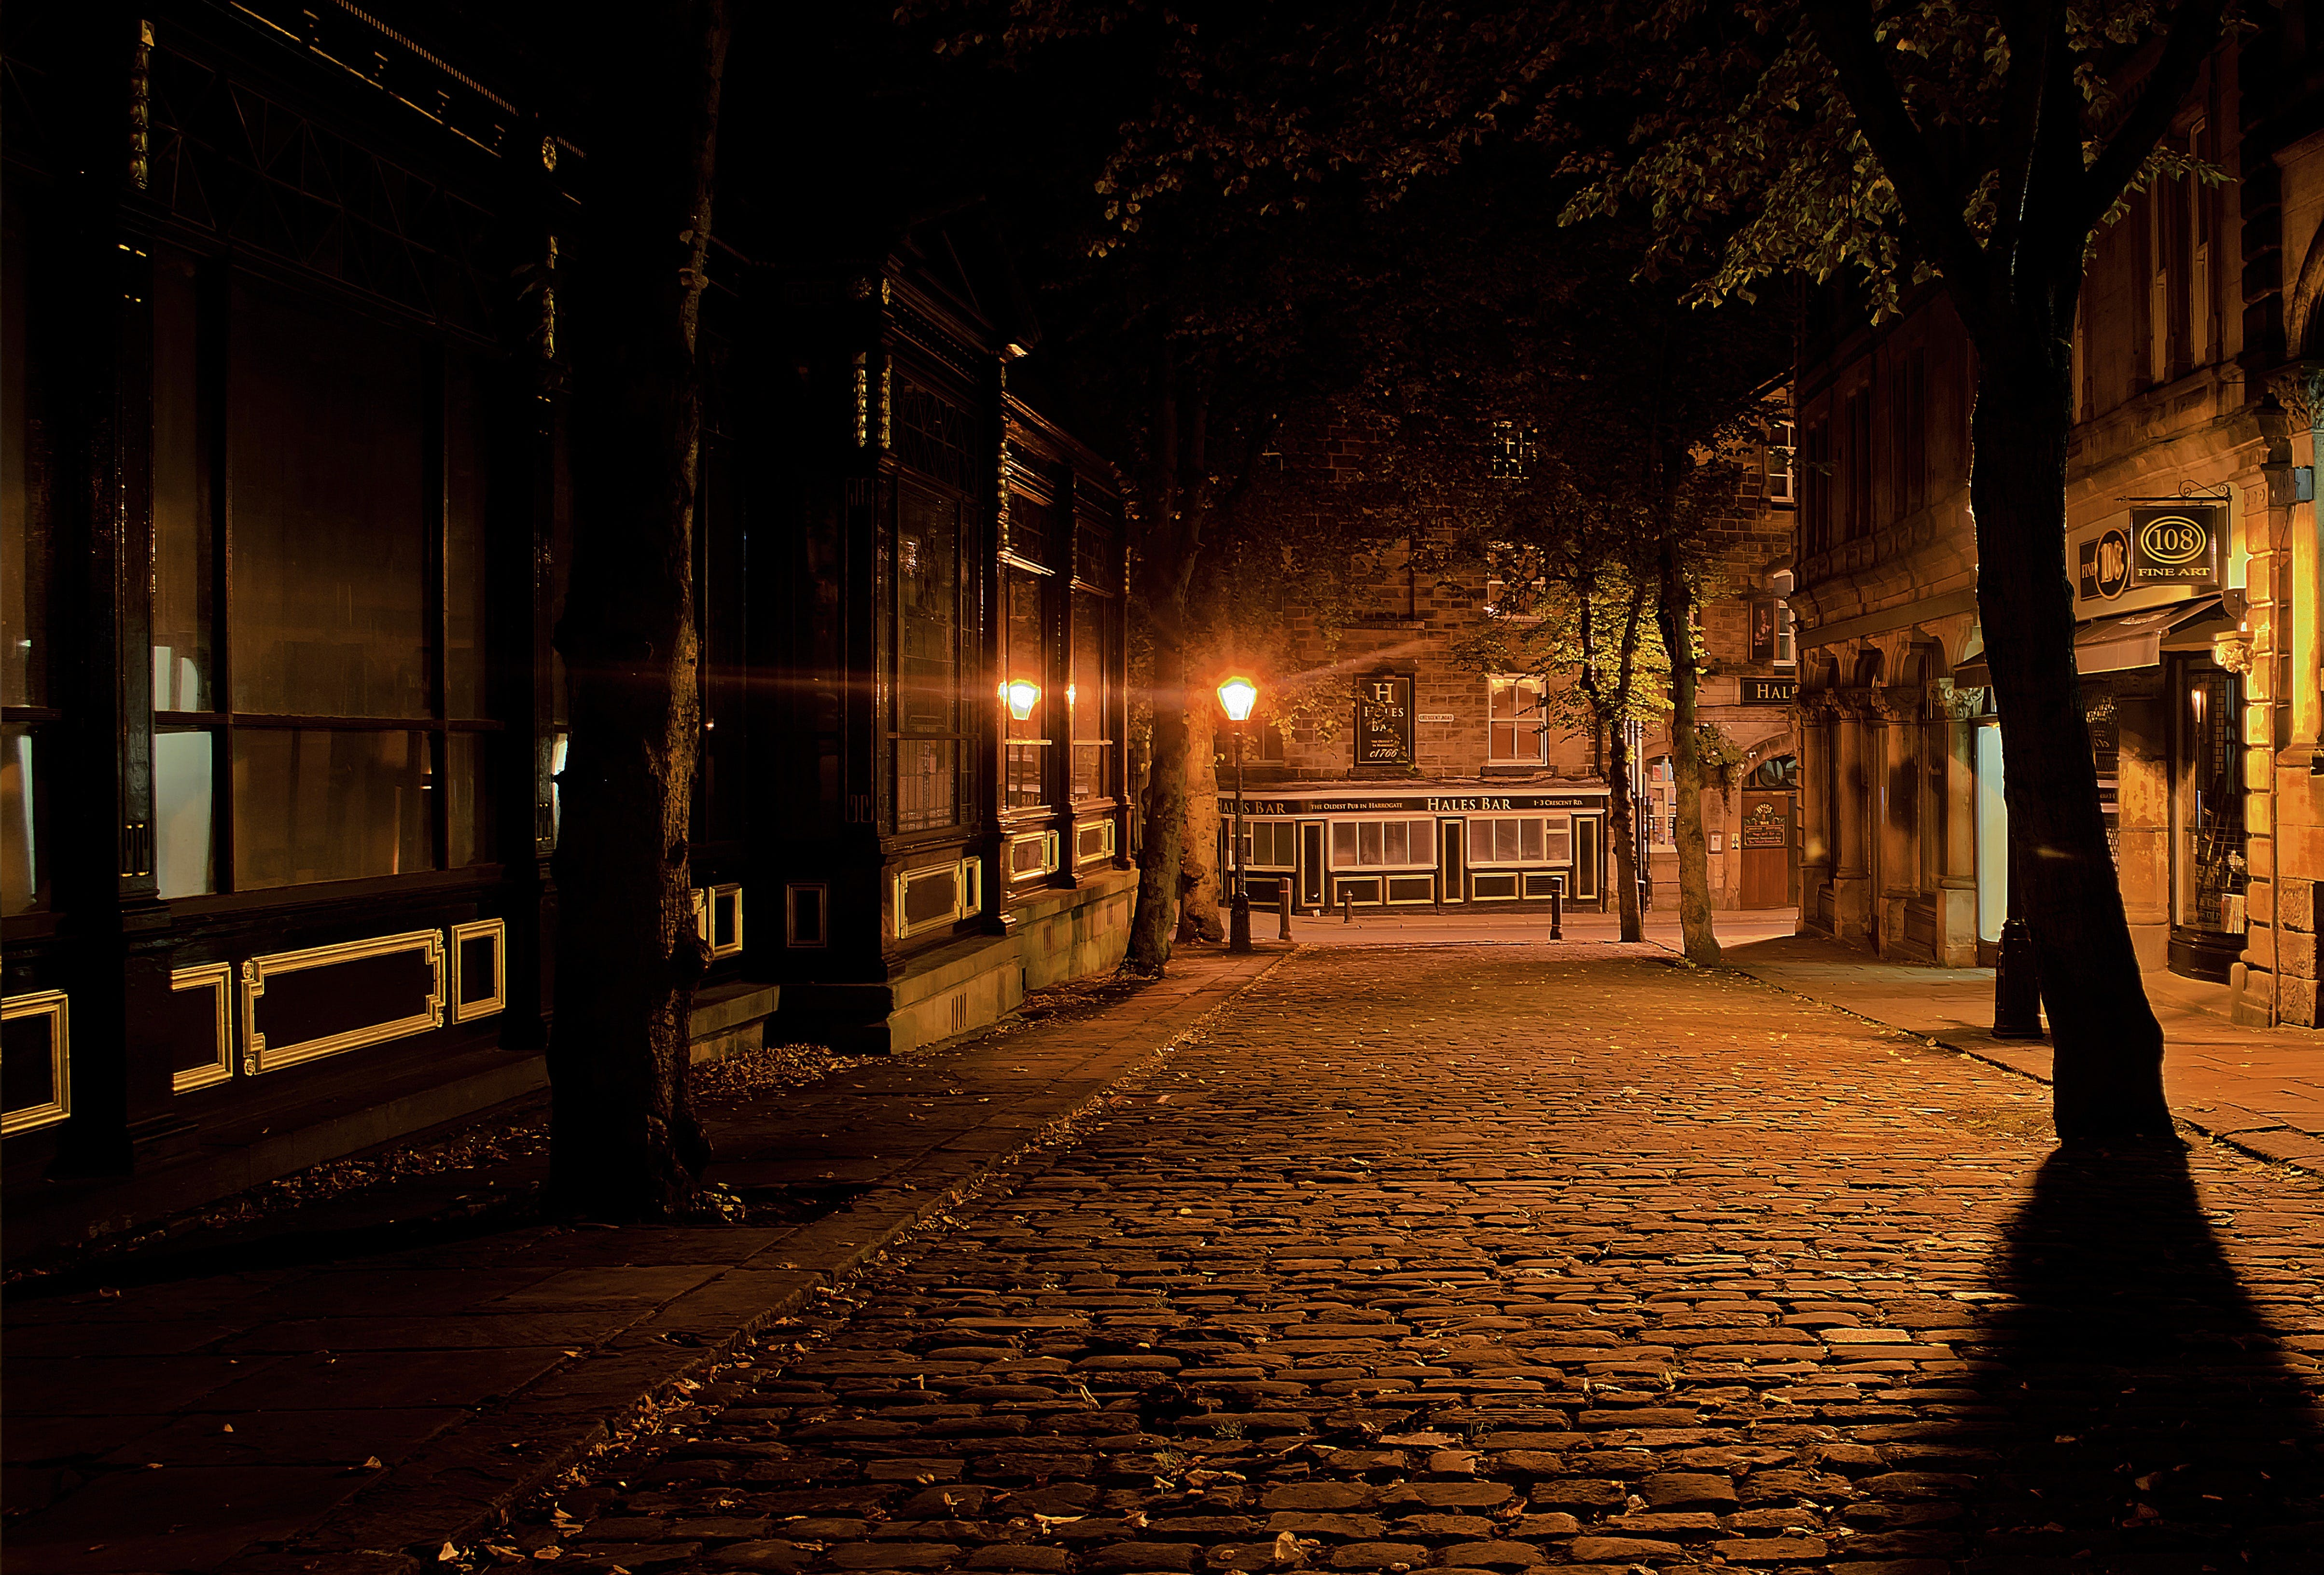 Silent Street during Night